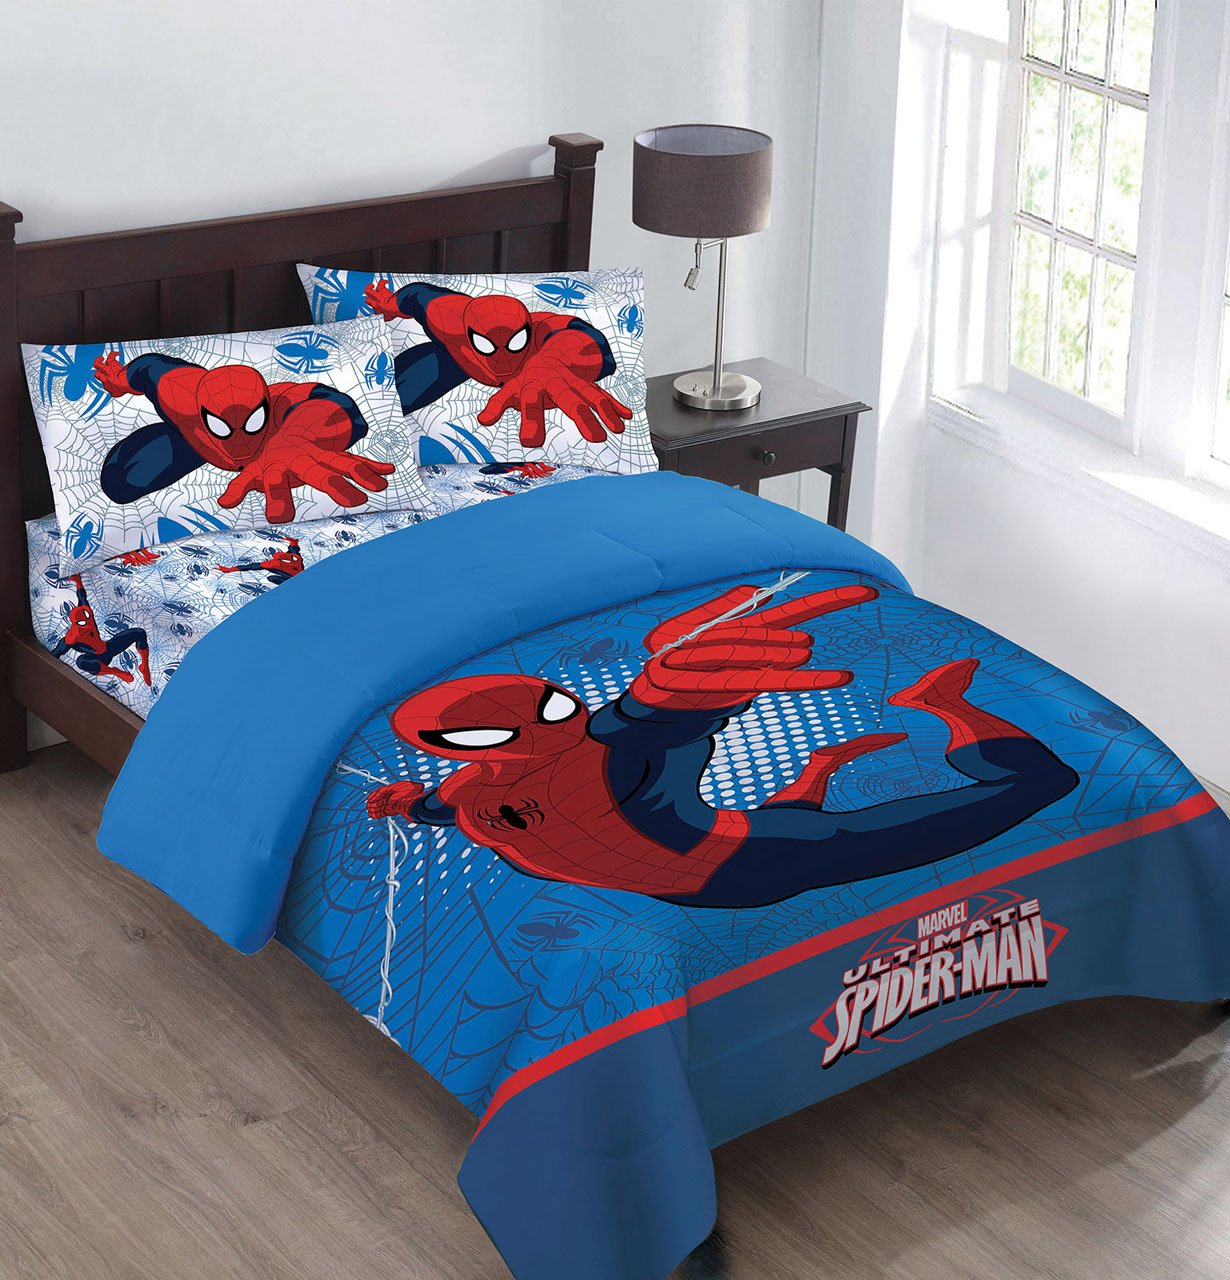 Marvel The Spiderman Webbed Wonder Full Comforter Set with Fitted Sheet by Marvel